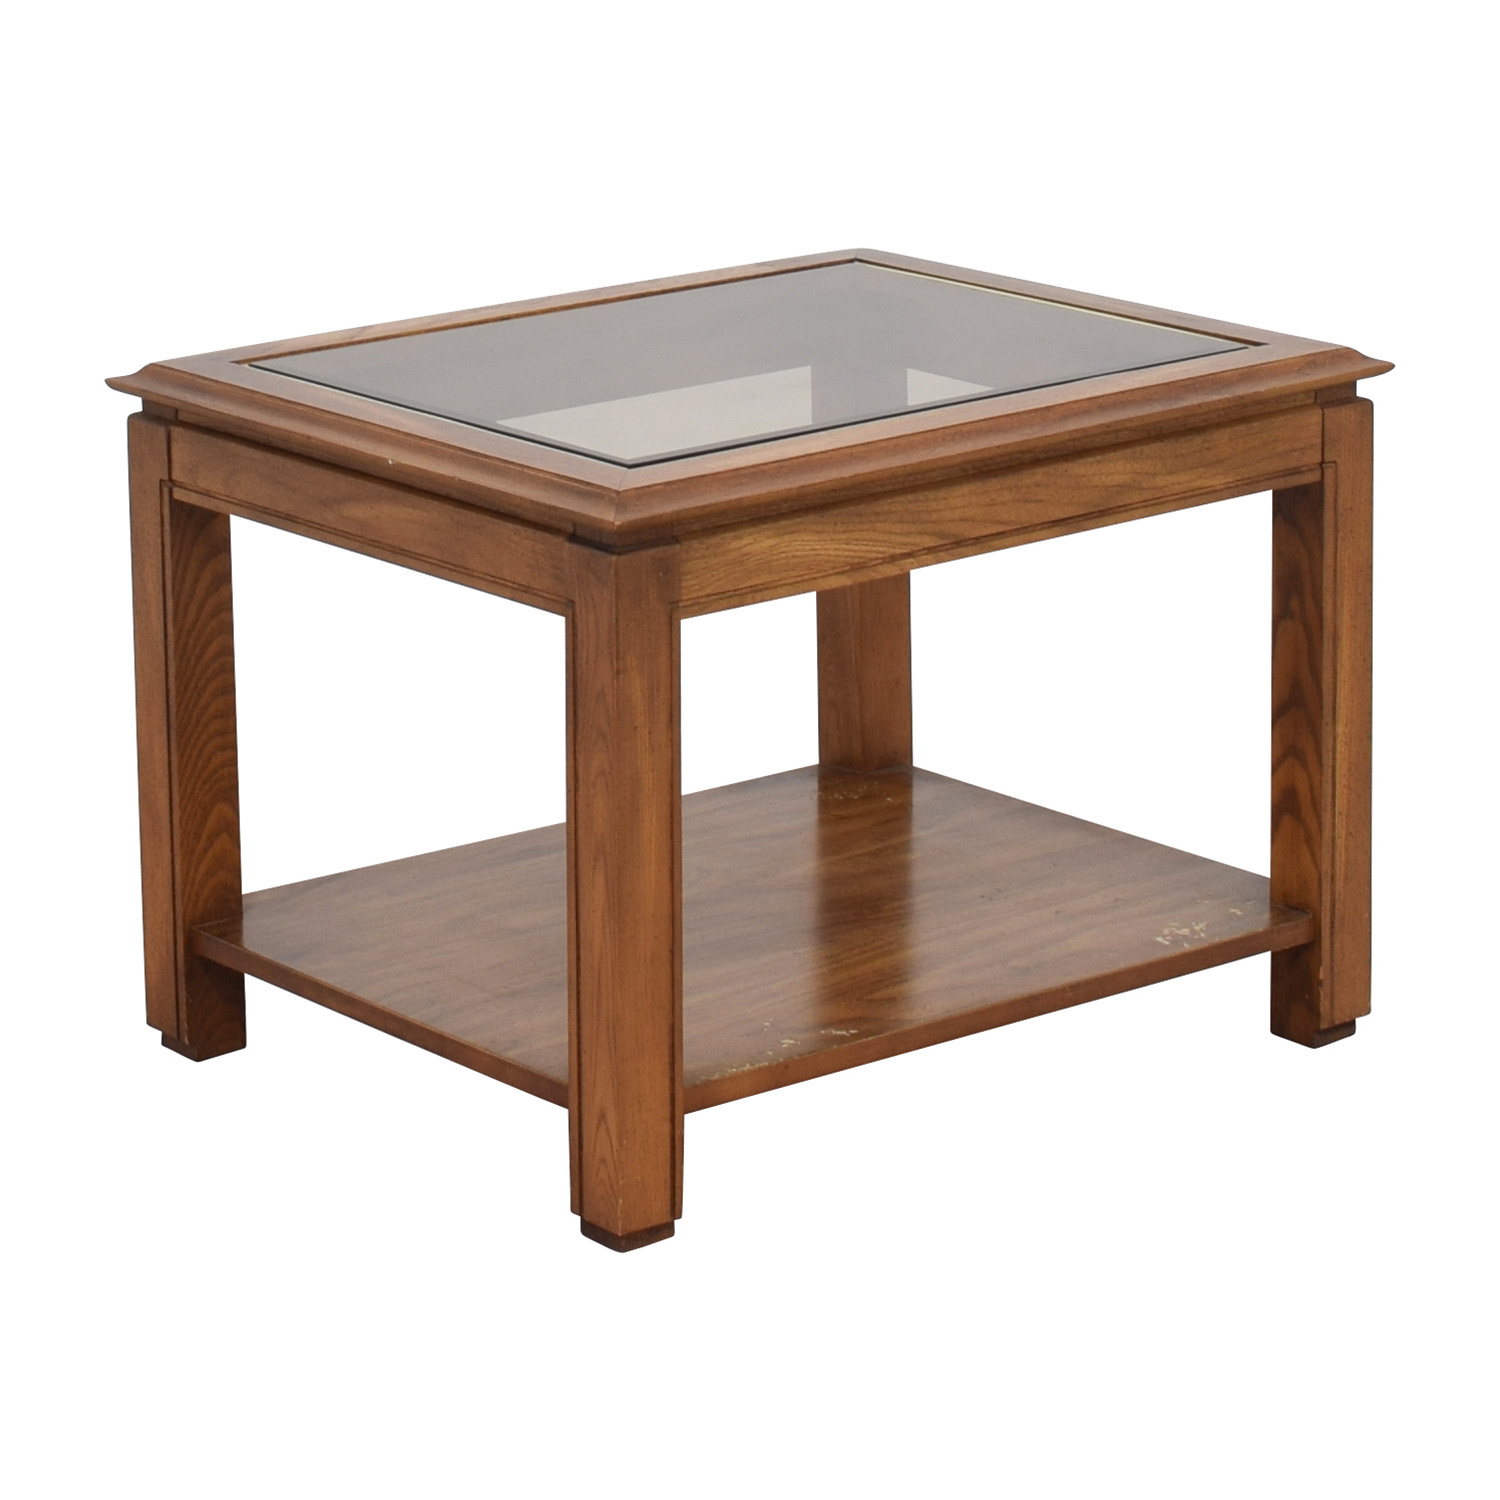 80 Off Walnut And Glass Rectangular Coffee Table Tables